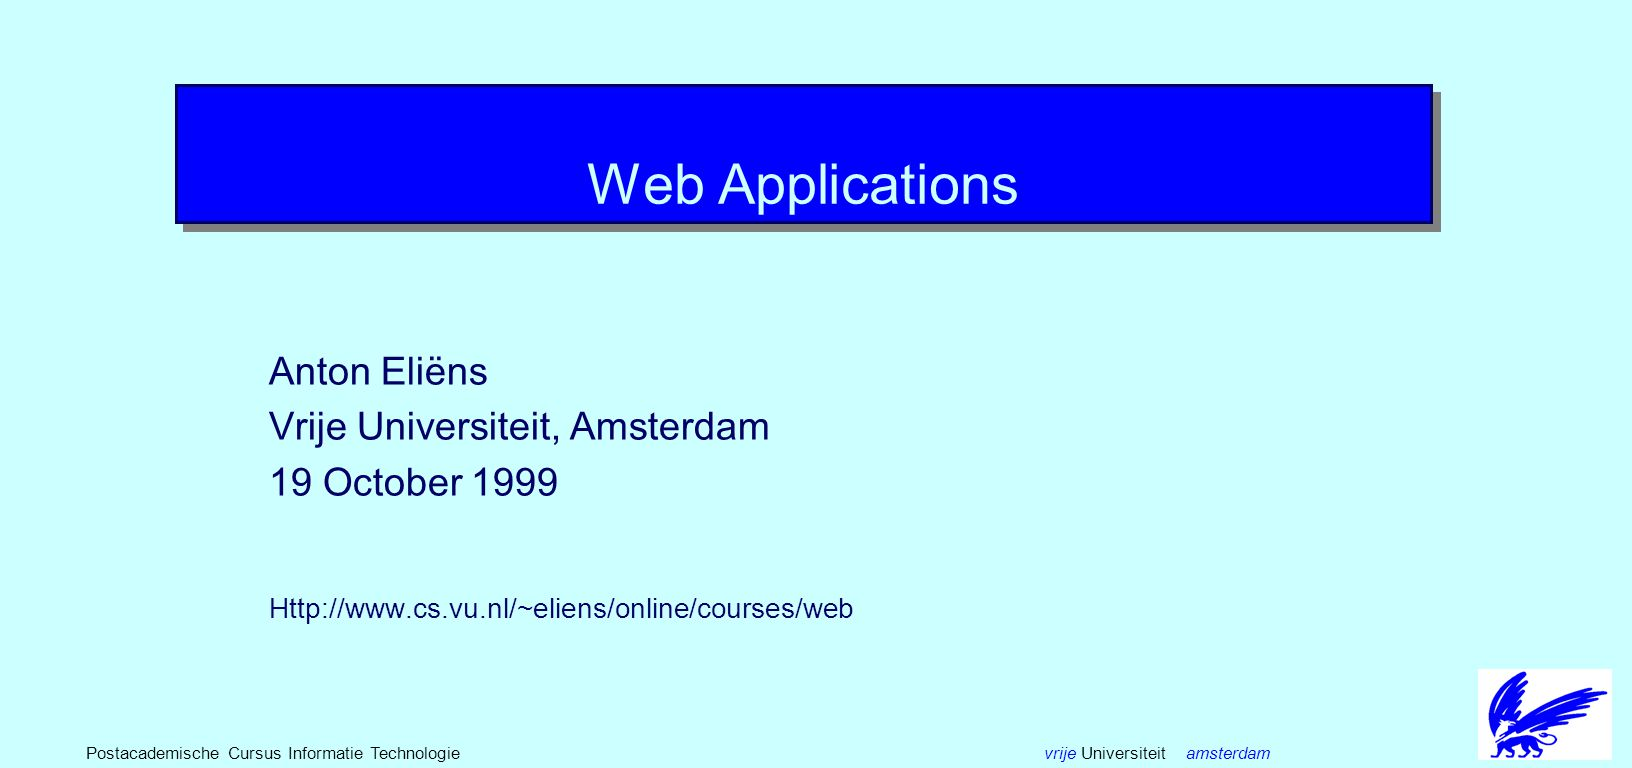 vrije Universiteit amsterdamPostacademische Cursus Informatie Technologie Web Applications Anton Eliëns Vrije Universiteit, Amsterdam 19 October 1999 Http://www.cs.vu.nl/~eliens/online/courses/web